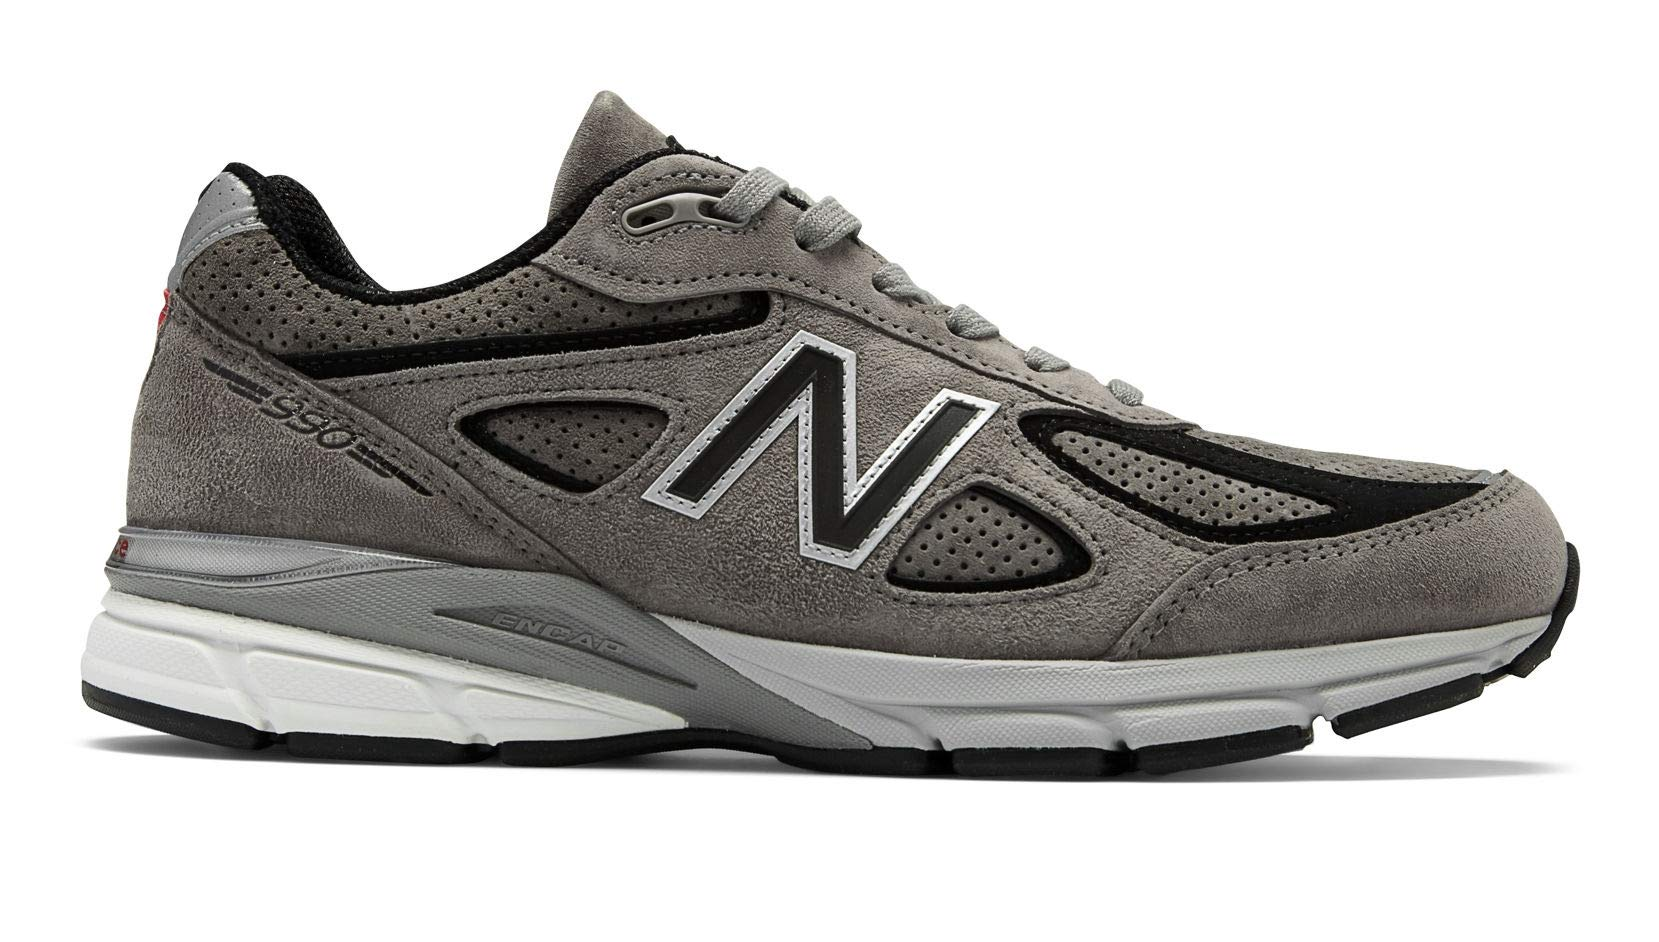 sports shoes f2e88 8a6d1 New Balance Men's Running 990V4 Grey Size 13